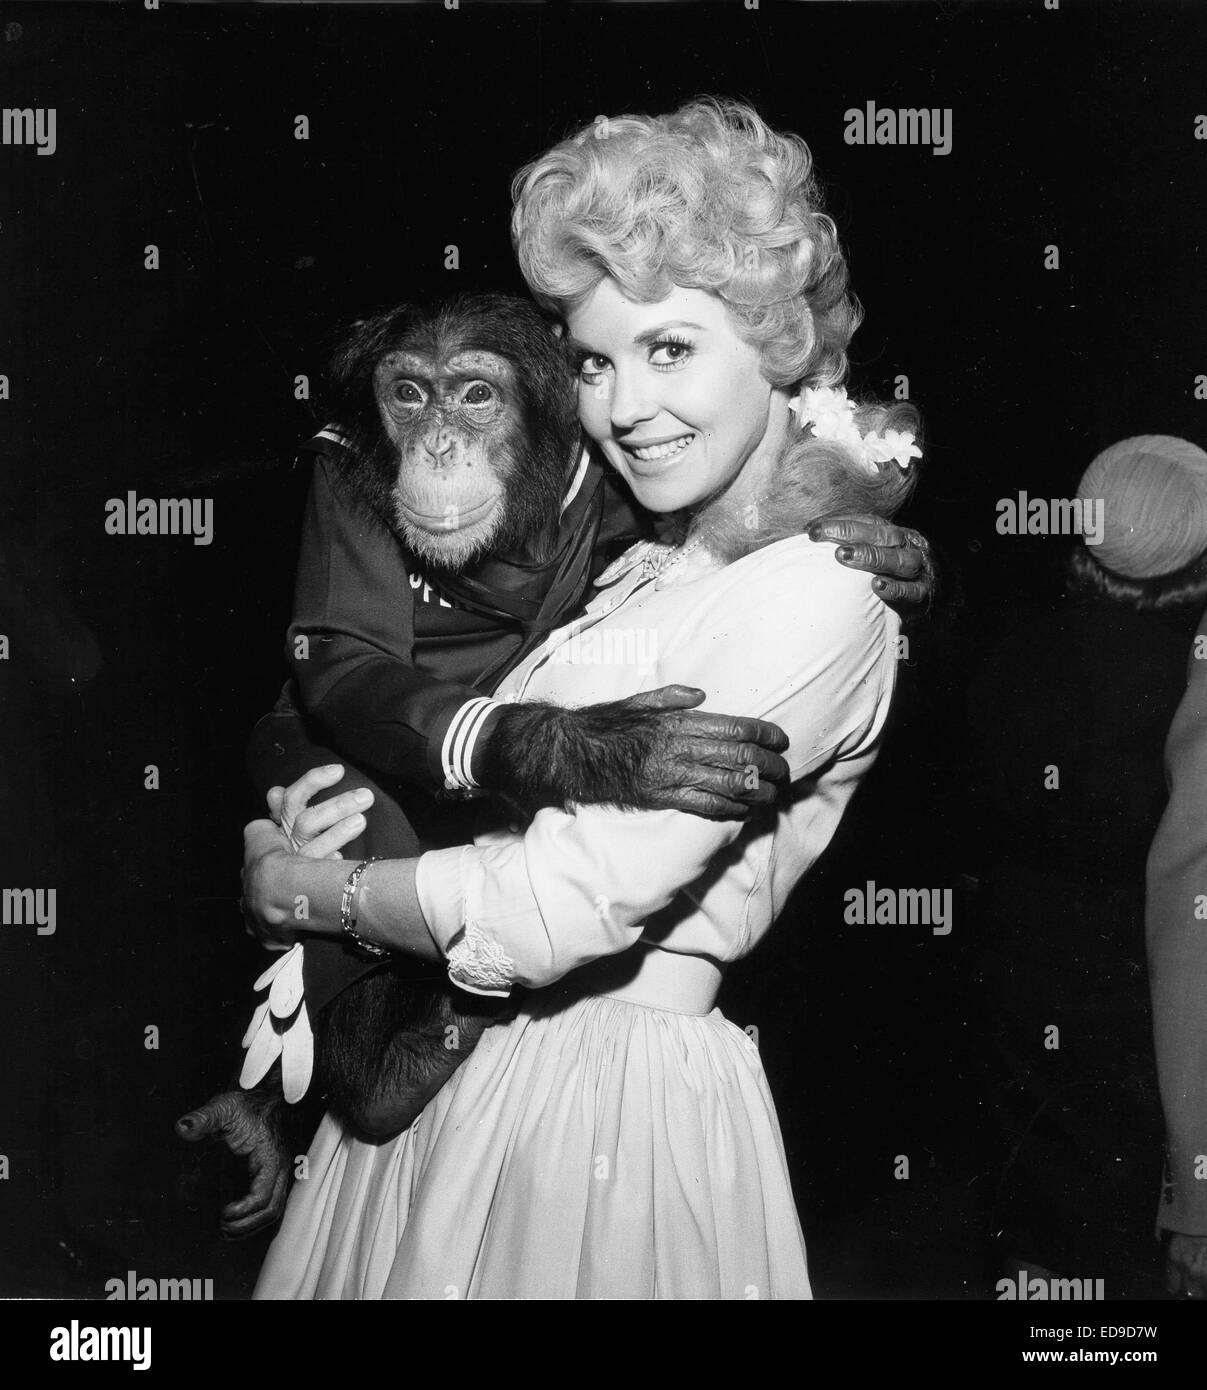 File. 2nd Jan, 2015. Donna Douglas, who played hillbilly bombshell Elly May Clampett on the baby-boomer-beloved 1960s sitcom The Beverly Hillbillies, has died in her Louisiana home. She was 81. PICTURED: Aug. 1, 2011 - DONNA DOUGLAS. © Globe Photos/ZUMAPRESS.com/Alamy Live News Stock Photo